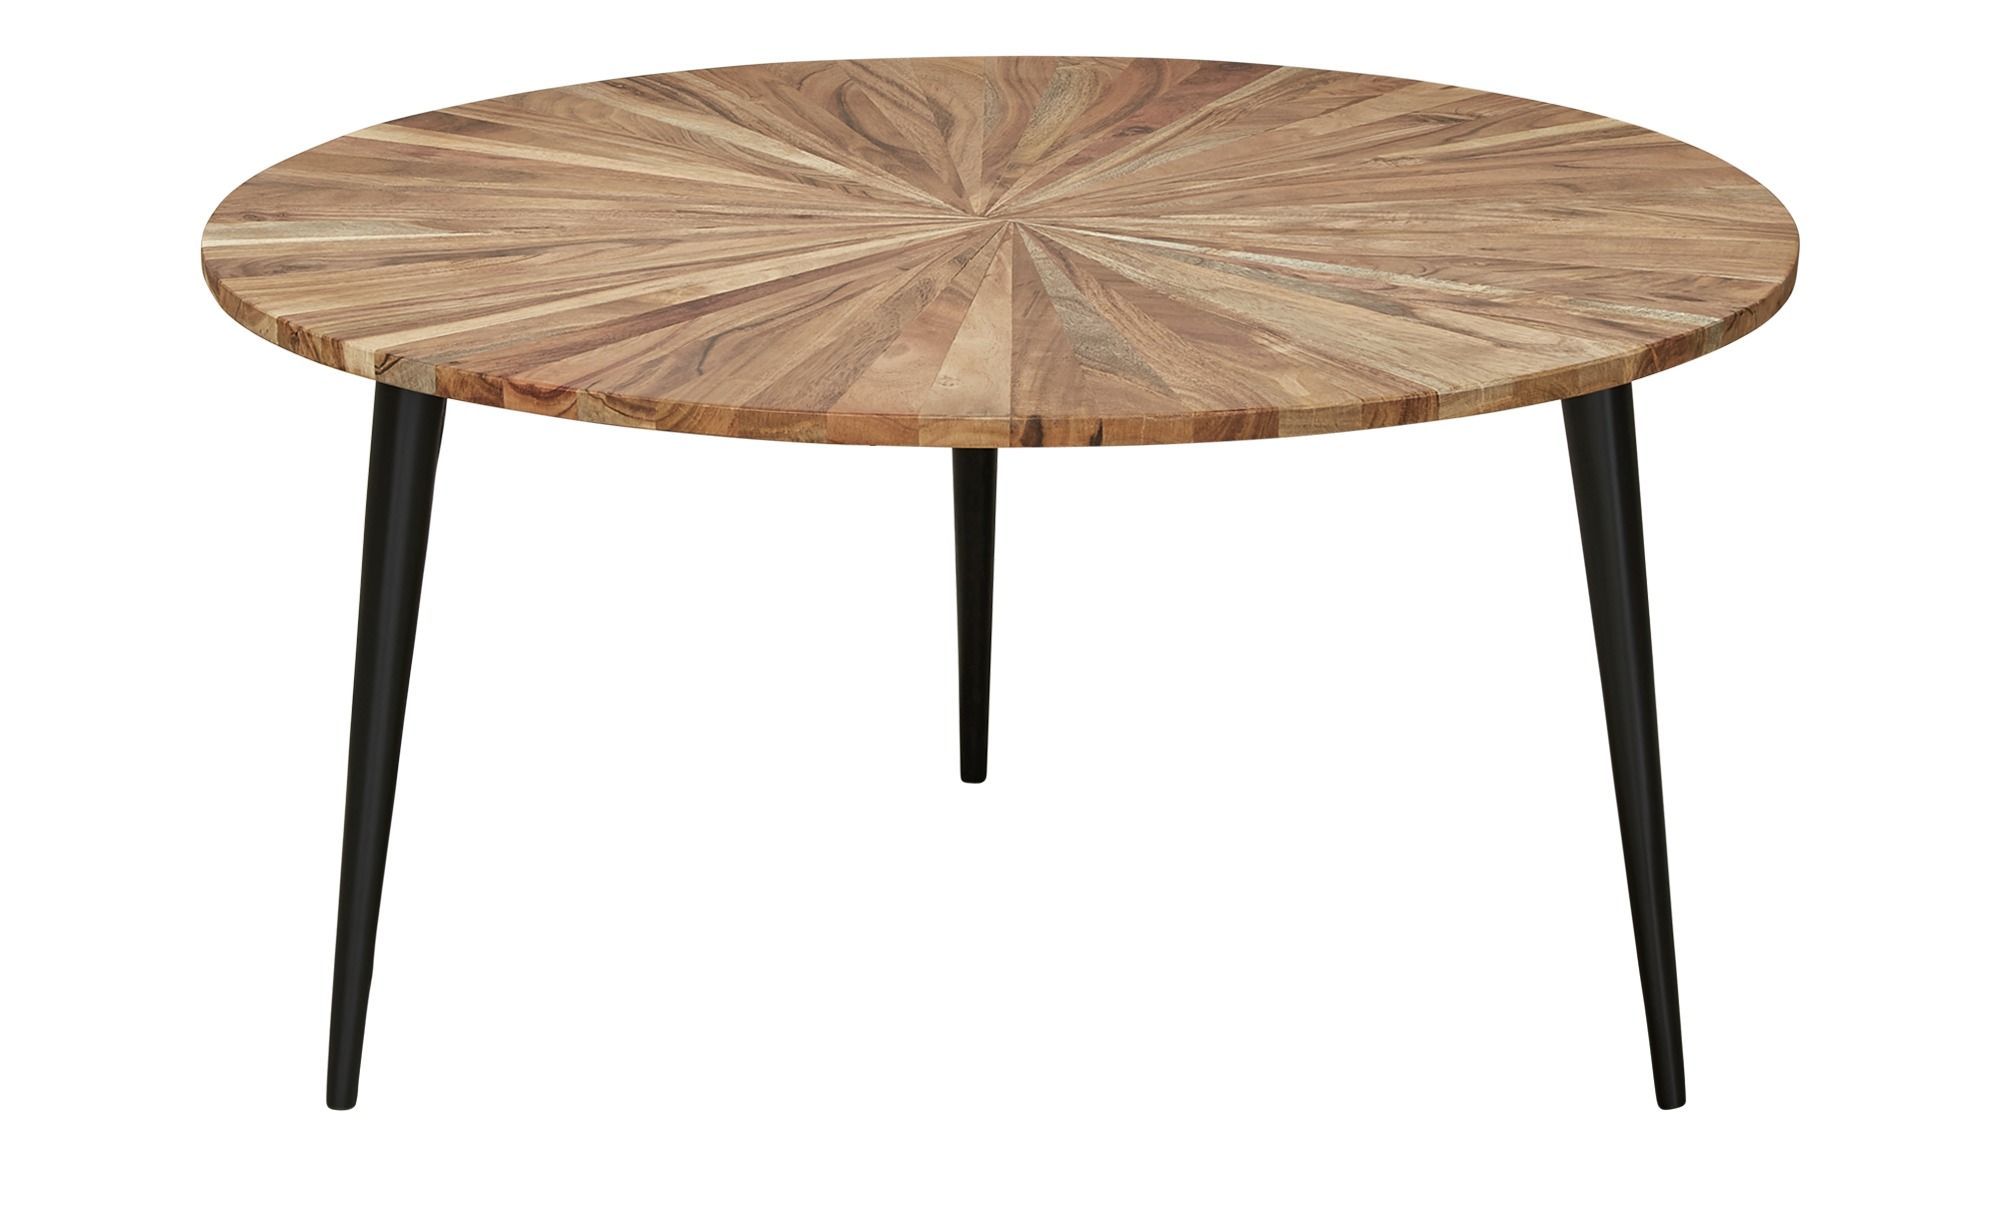 Designermöbel Düsseldorf Pin By Ladendirekt On Tische In 2019 Table Furniture Decor